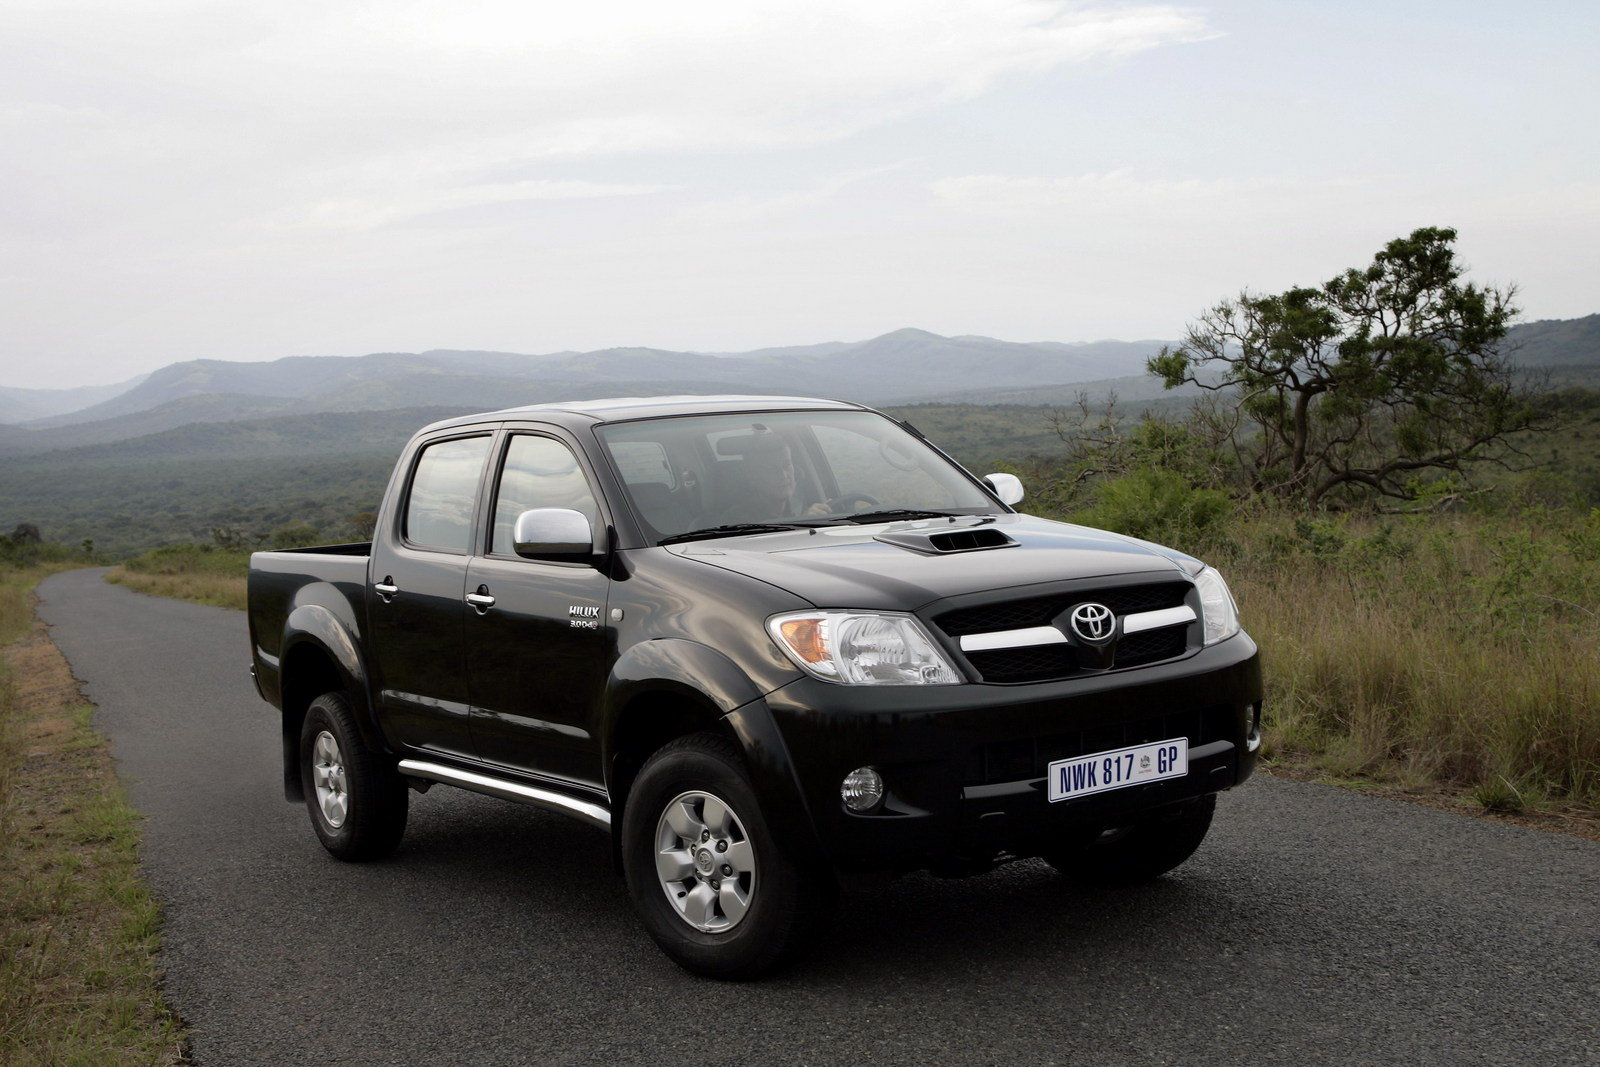 2007 toyota hilux picture 158012 car review top speed. Black Bedroom Furniture Sets. Home Design Ideas